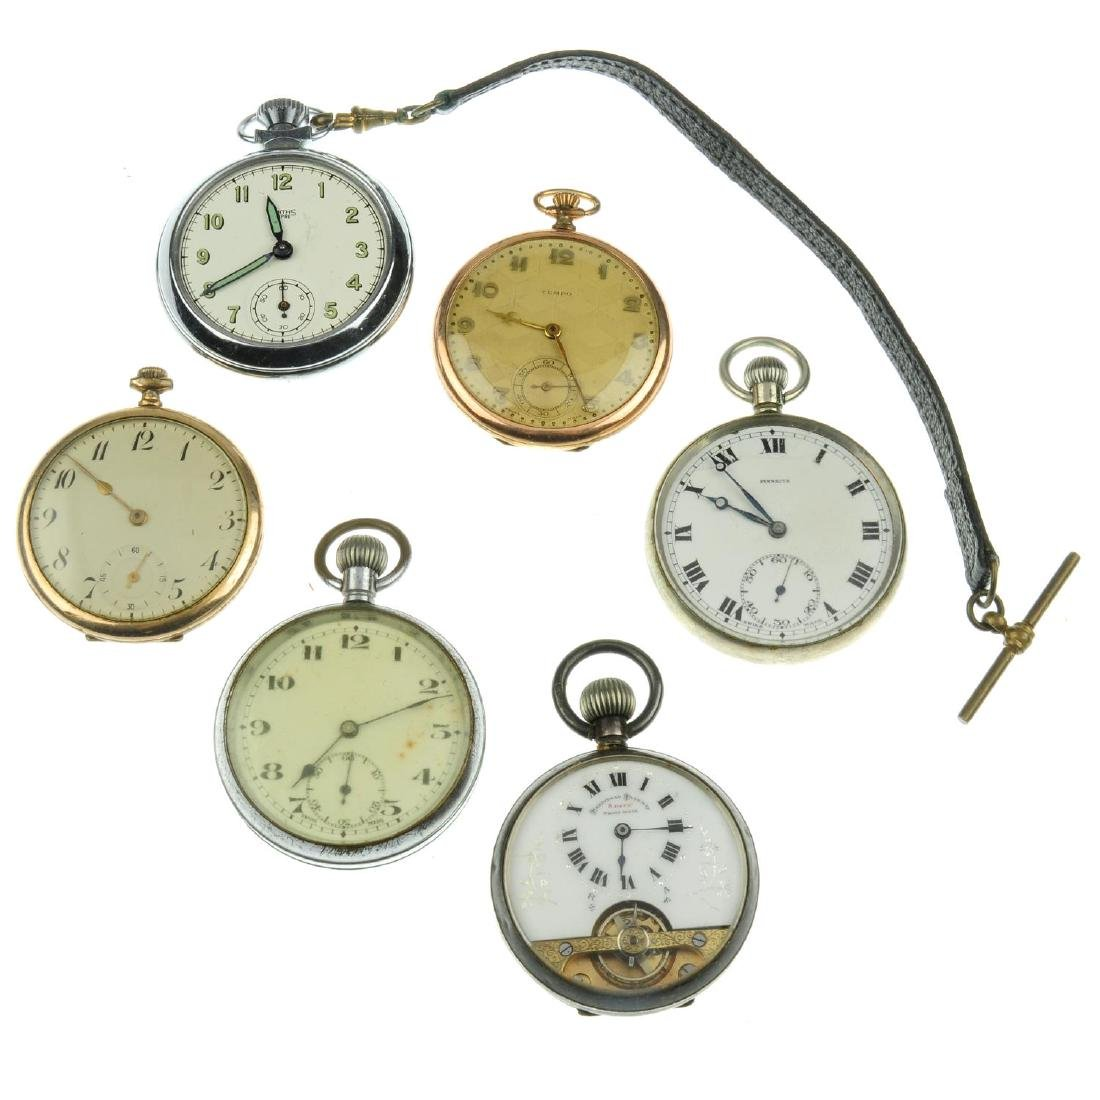 A group of six assorted pocket watches, to include an